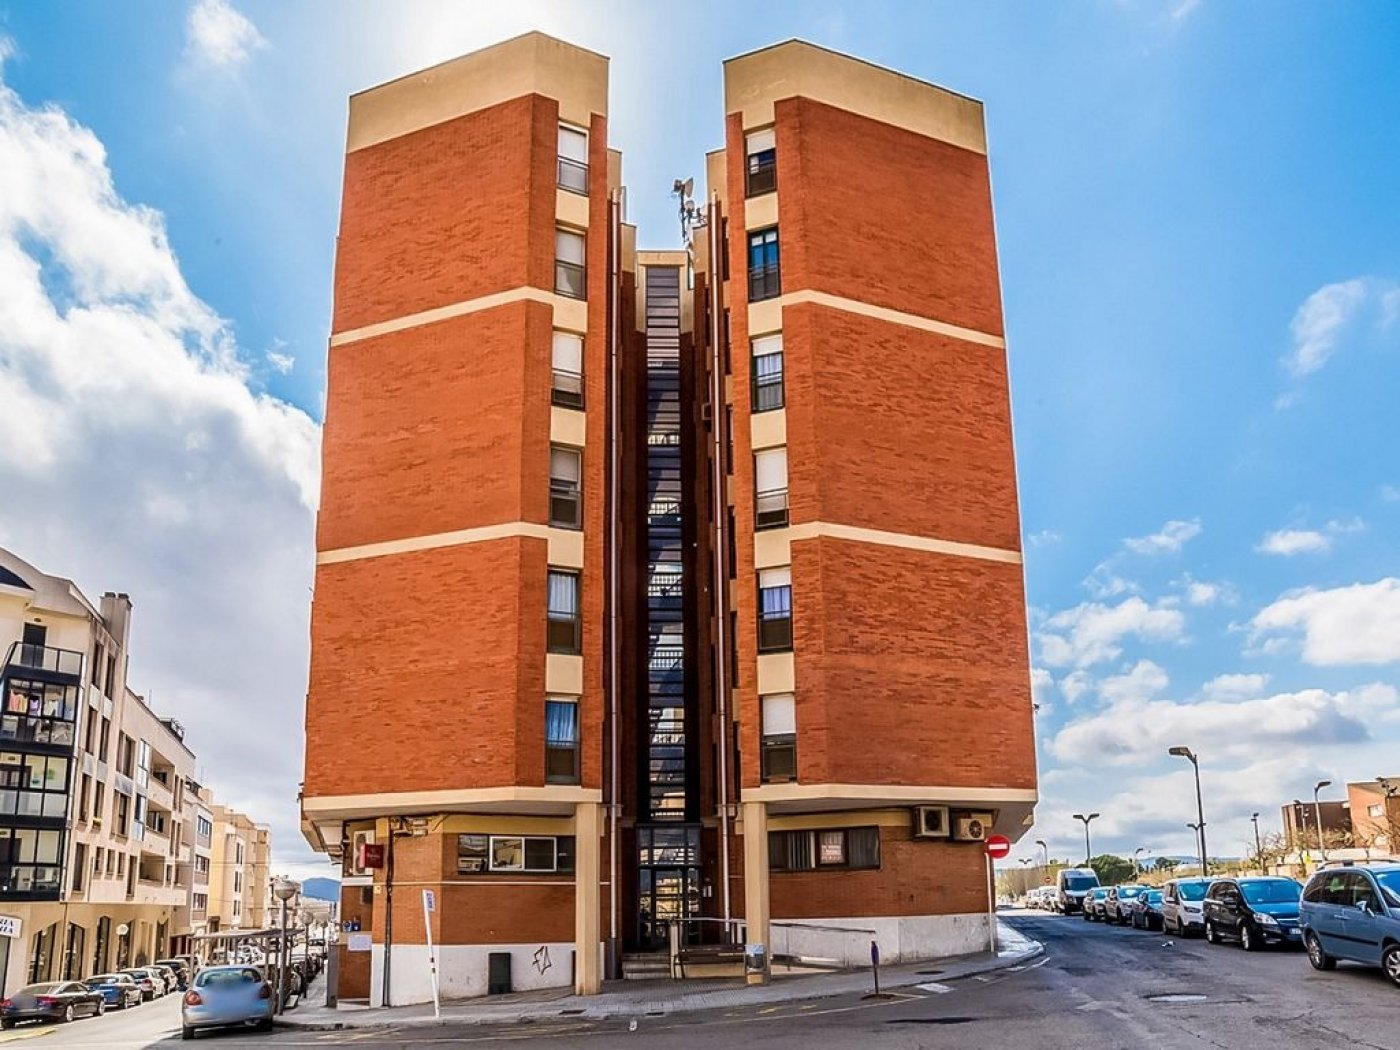 Flat for sale in Juzgados - Consell Comarcal, Amposta